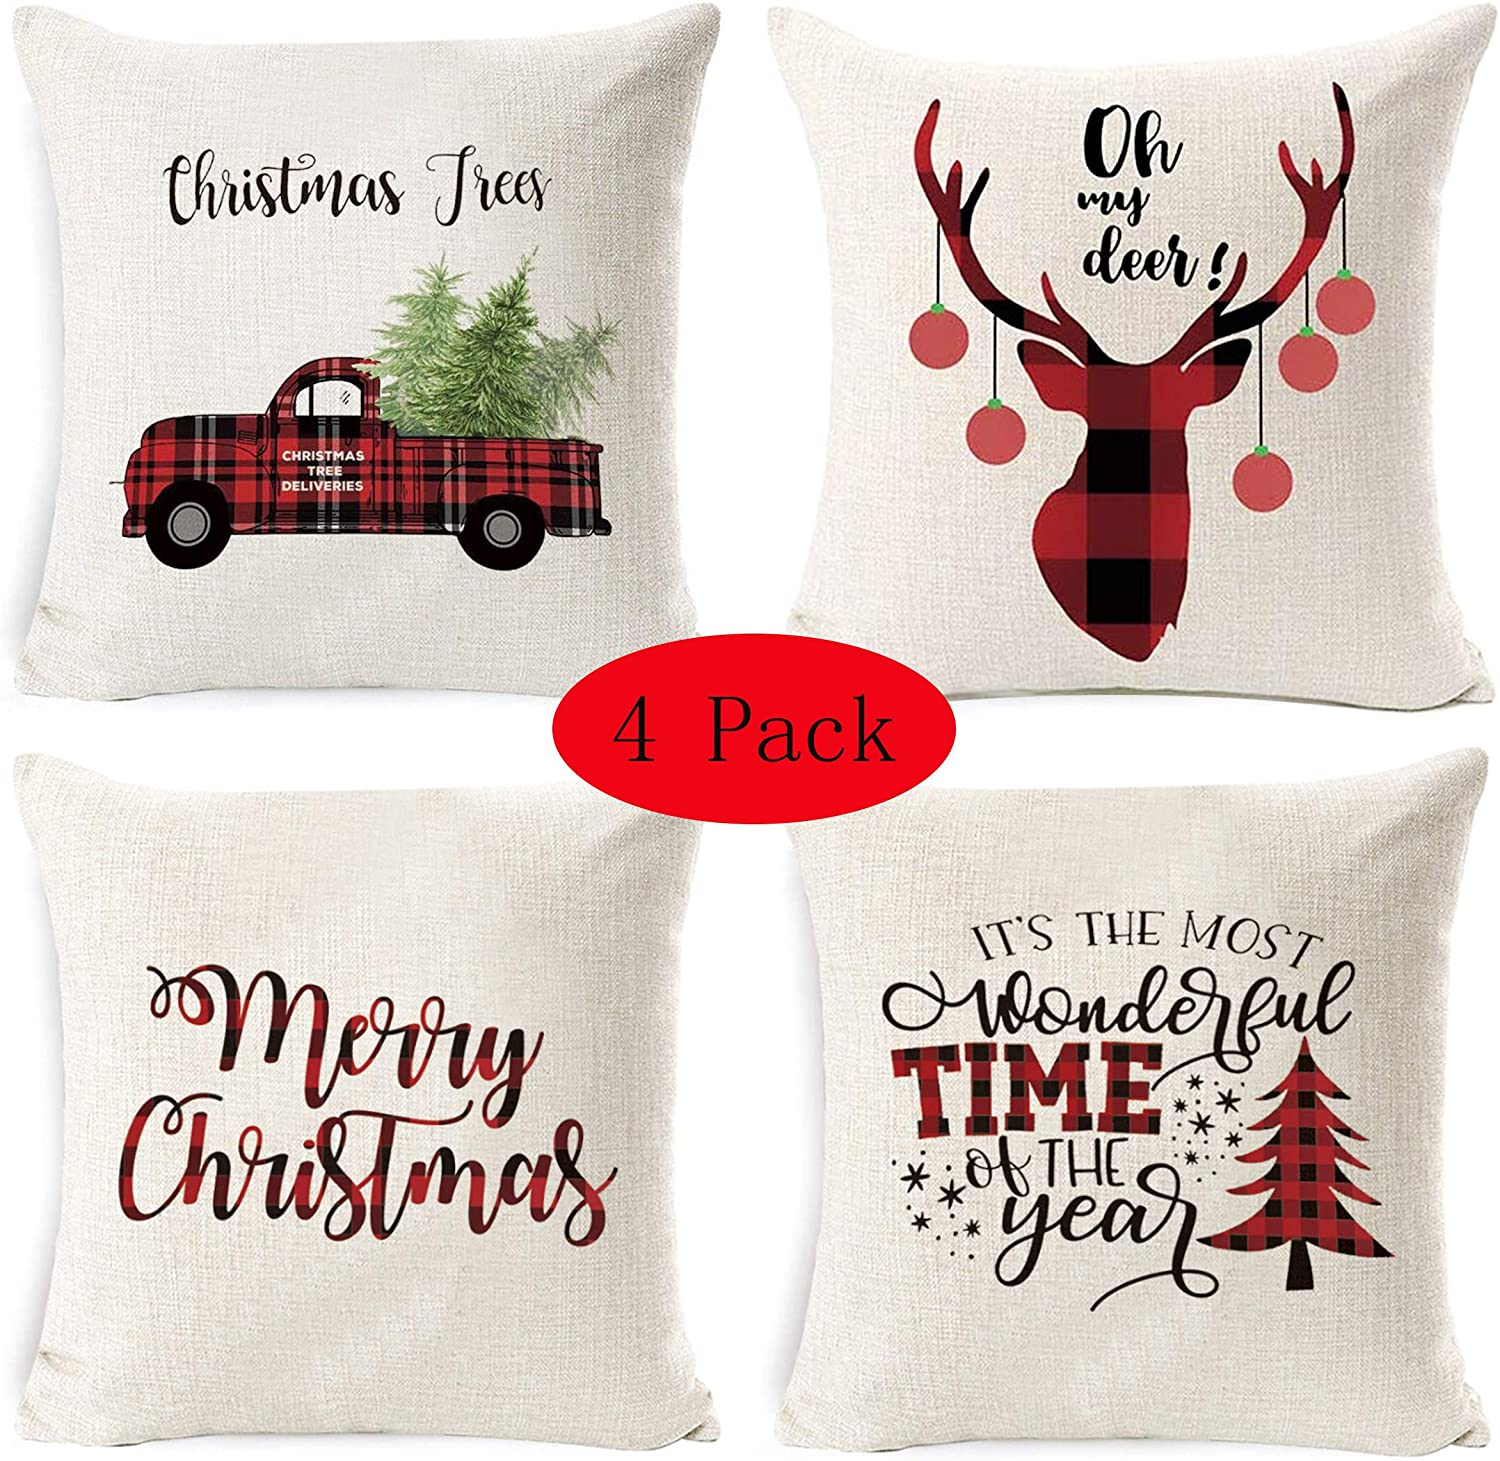 LUBOTS 4 Pack Christmas Throw Pillow Covers 18 X 18 Inch Christmas Trees Car/Truck Deer Merry Christmas Sofa Decorative Canvas Throw Pillow Case Cushion Covers Fresh